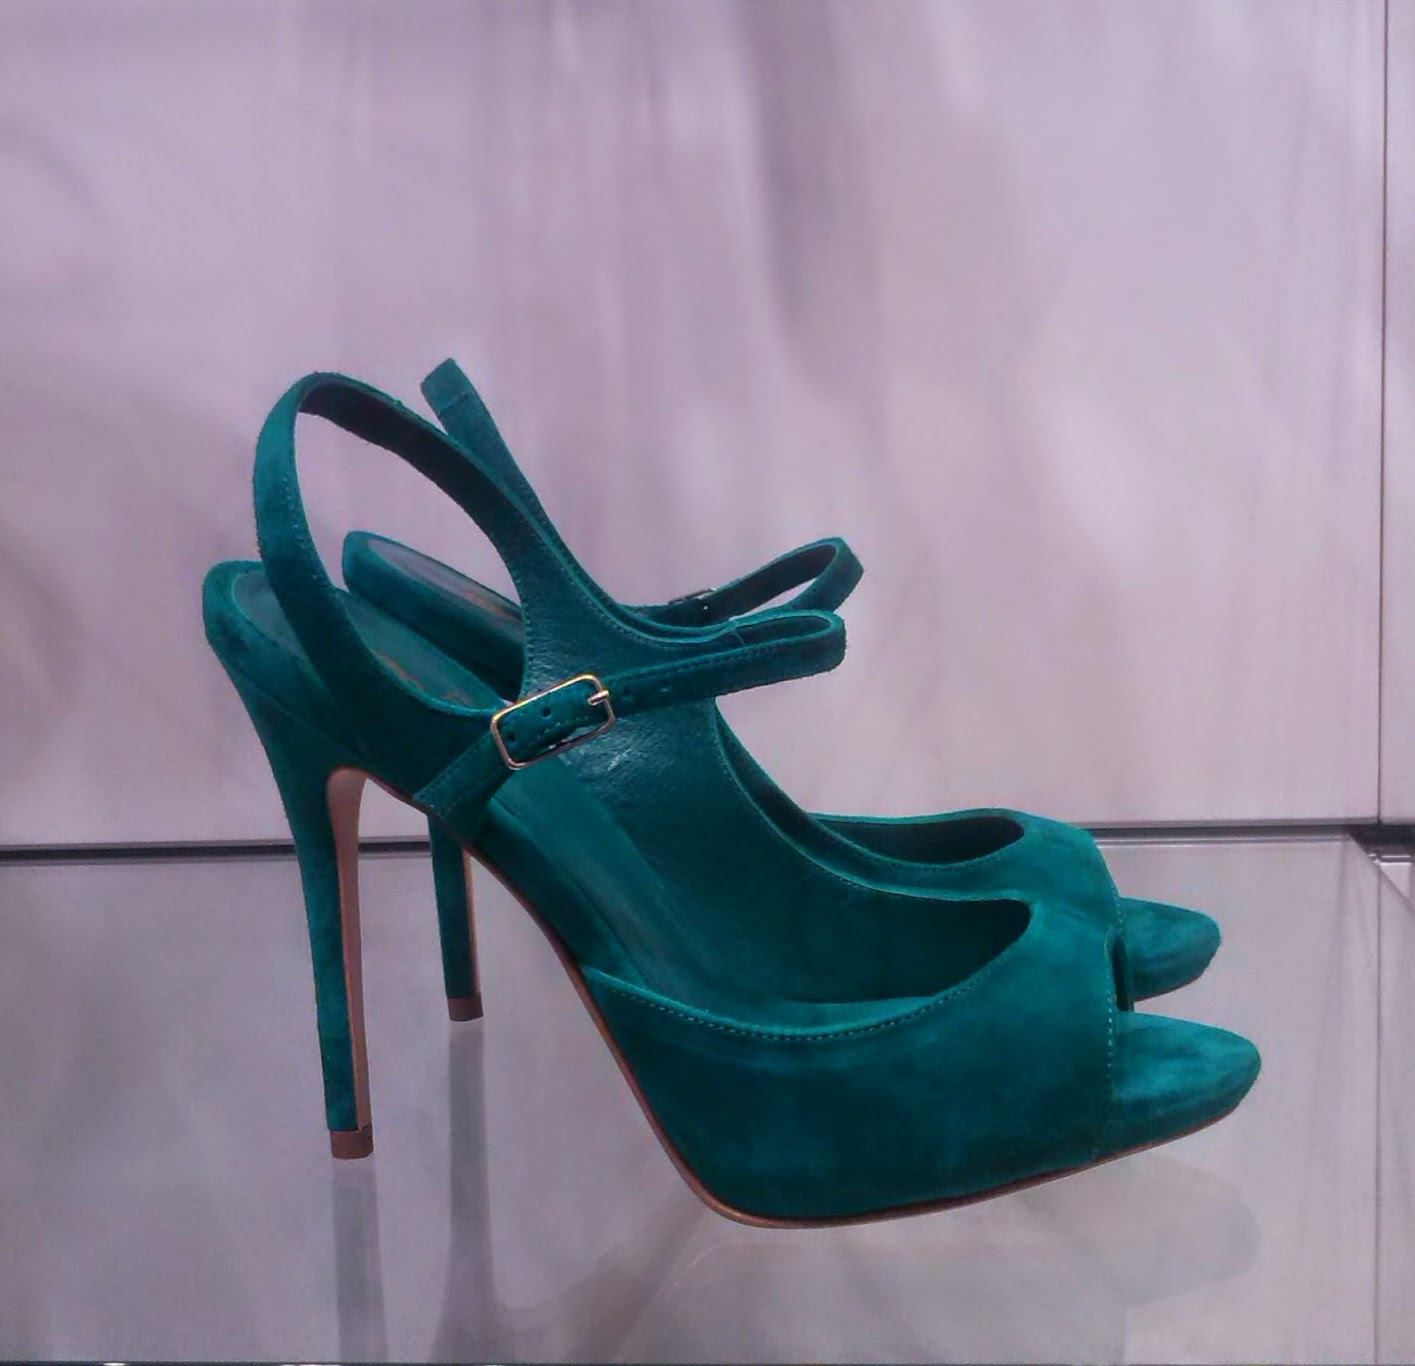 cinti, from_head_to_toe, hairstyle, mua, make_up_artist, vip, palermo, shoes, green, open_toe